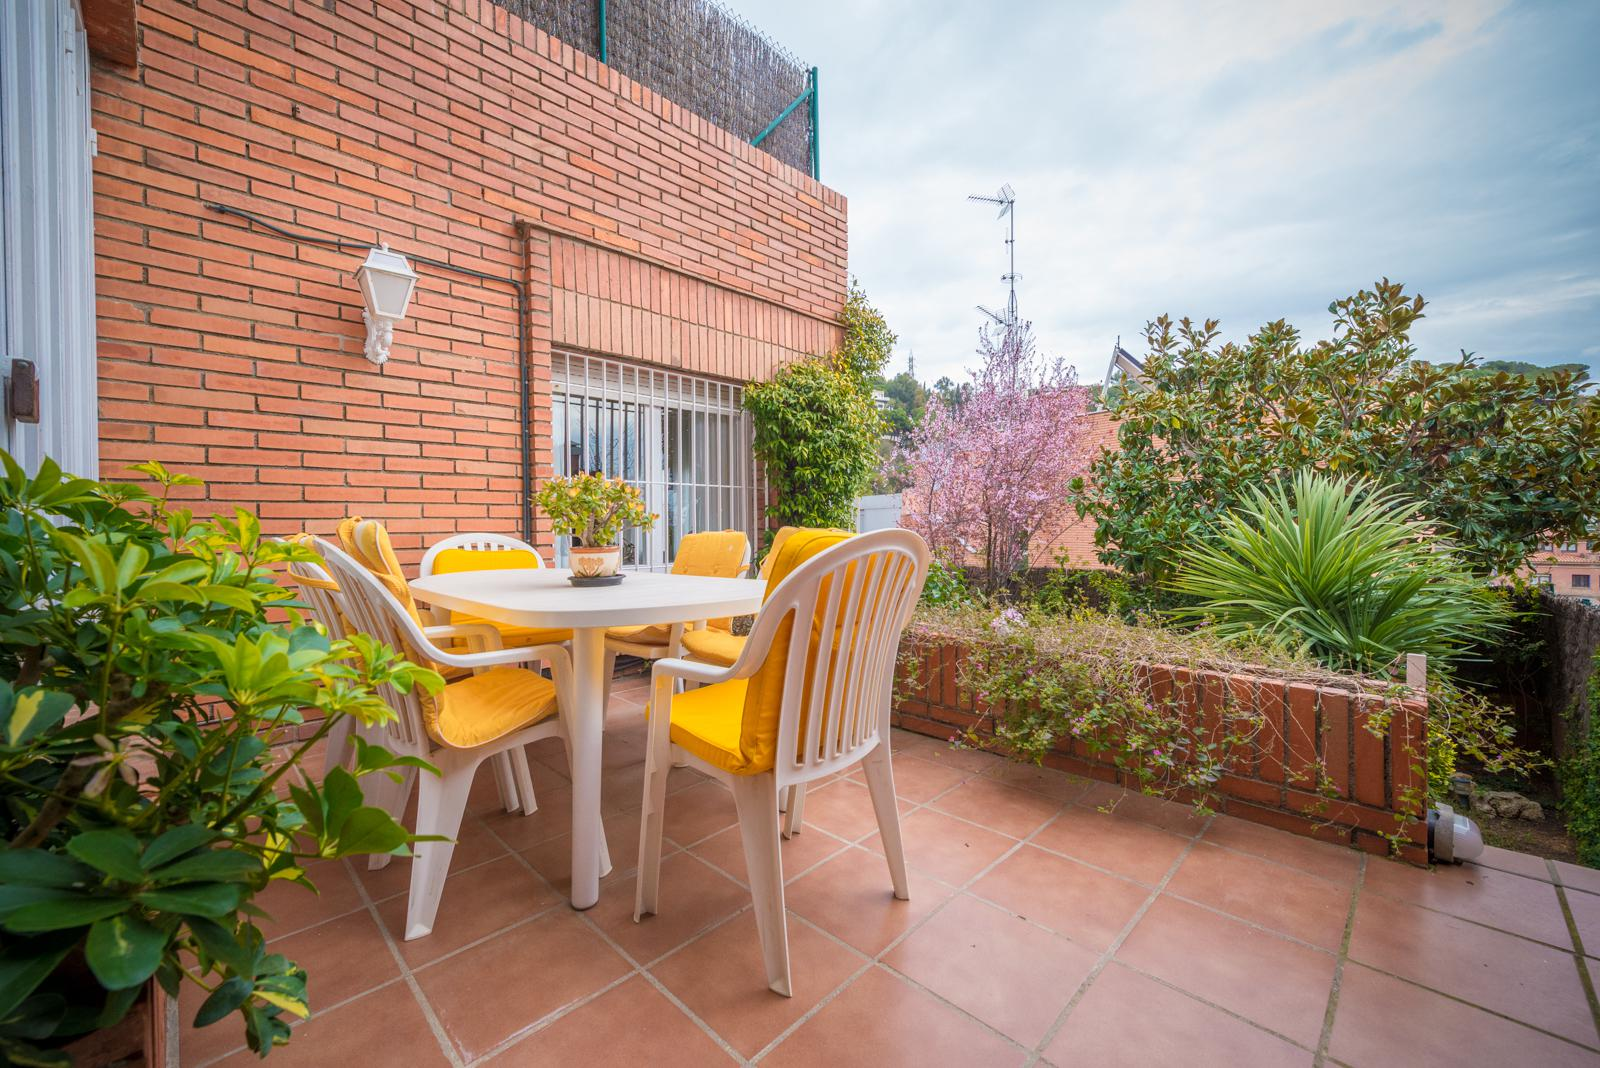 74341 Townhouse for sale in Gràcia, Vallcarca i els Penitents 13